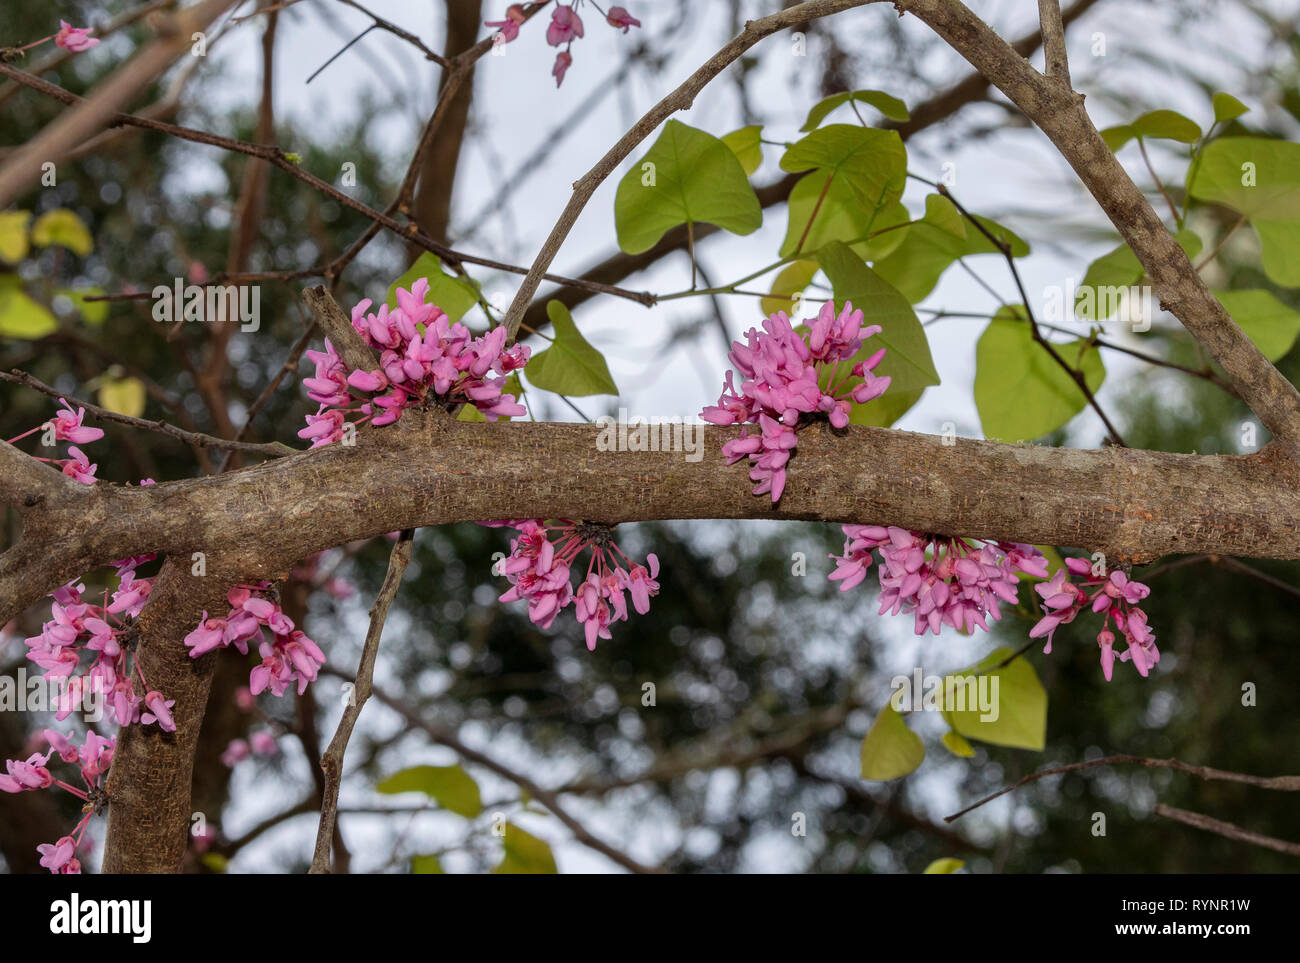 Eastern Redbud, Cercis canadensis, in flower in early spring, Florida. Stock Photo